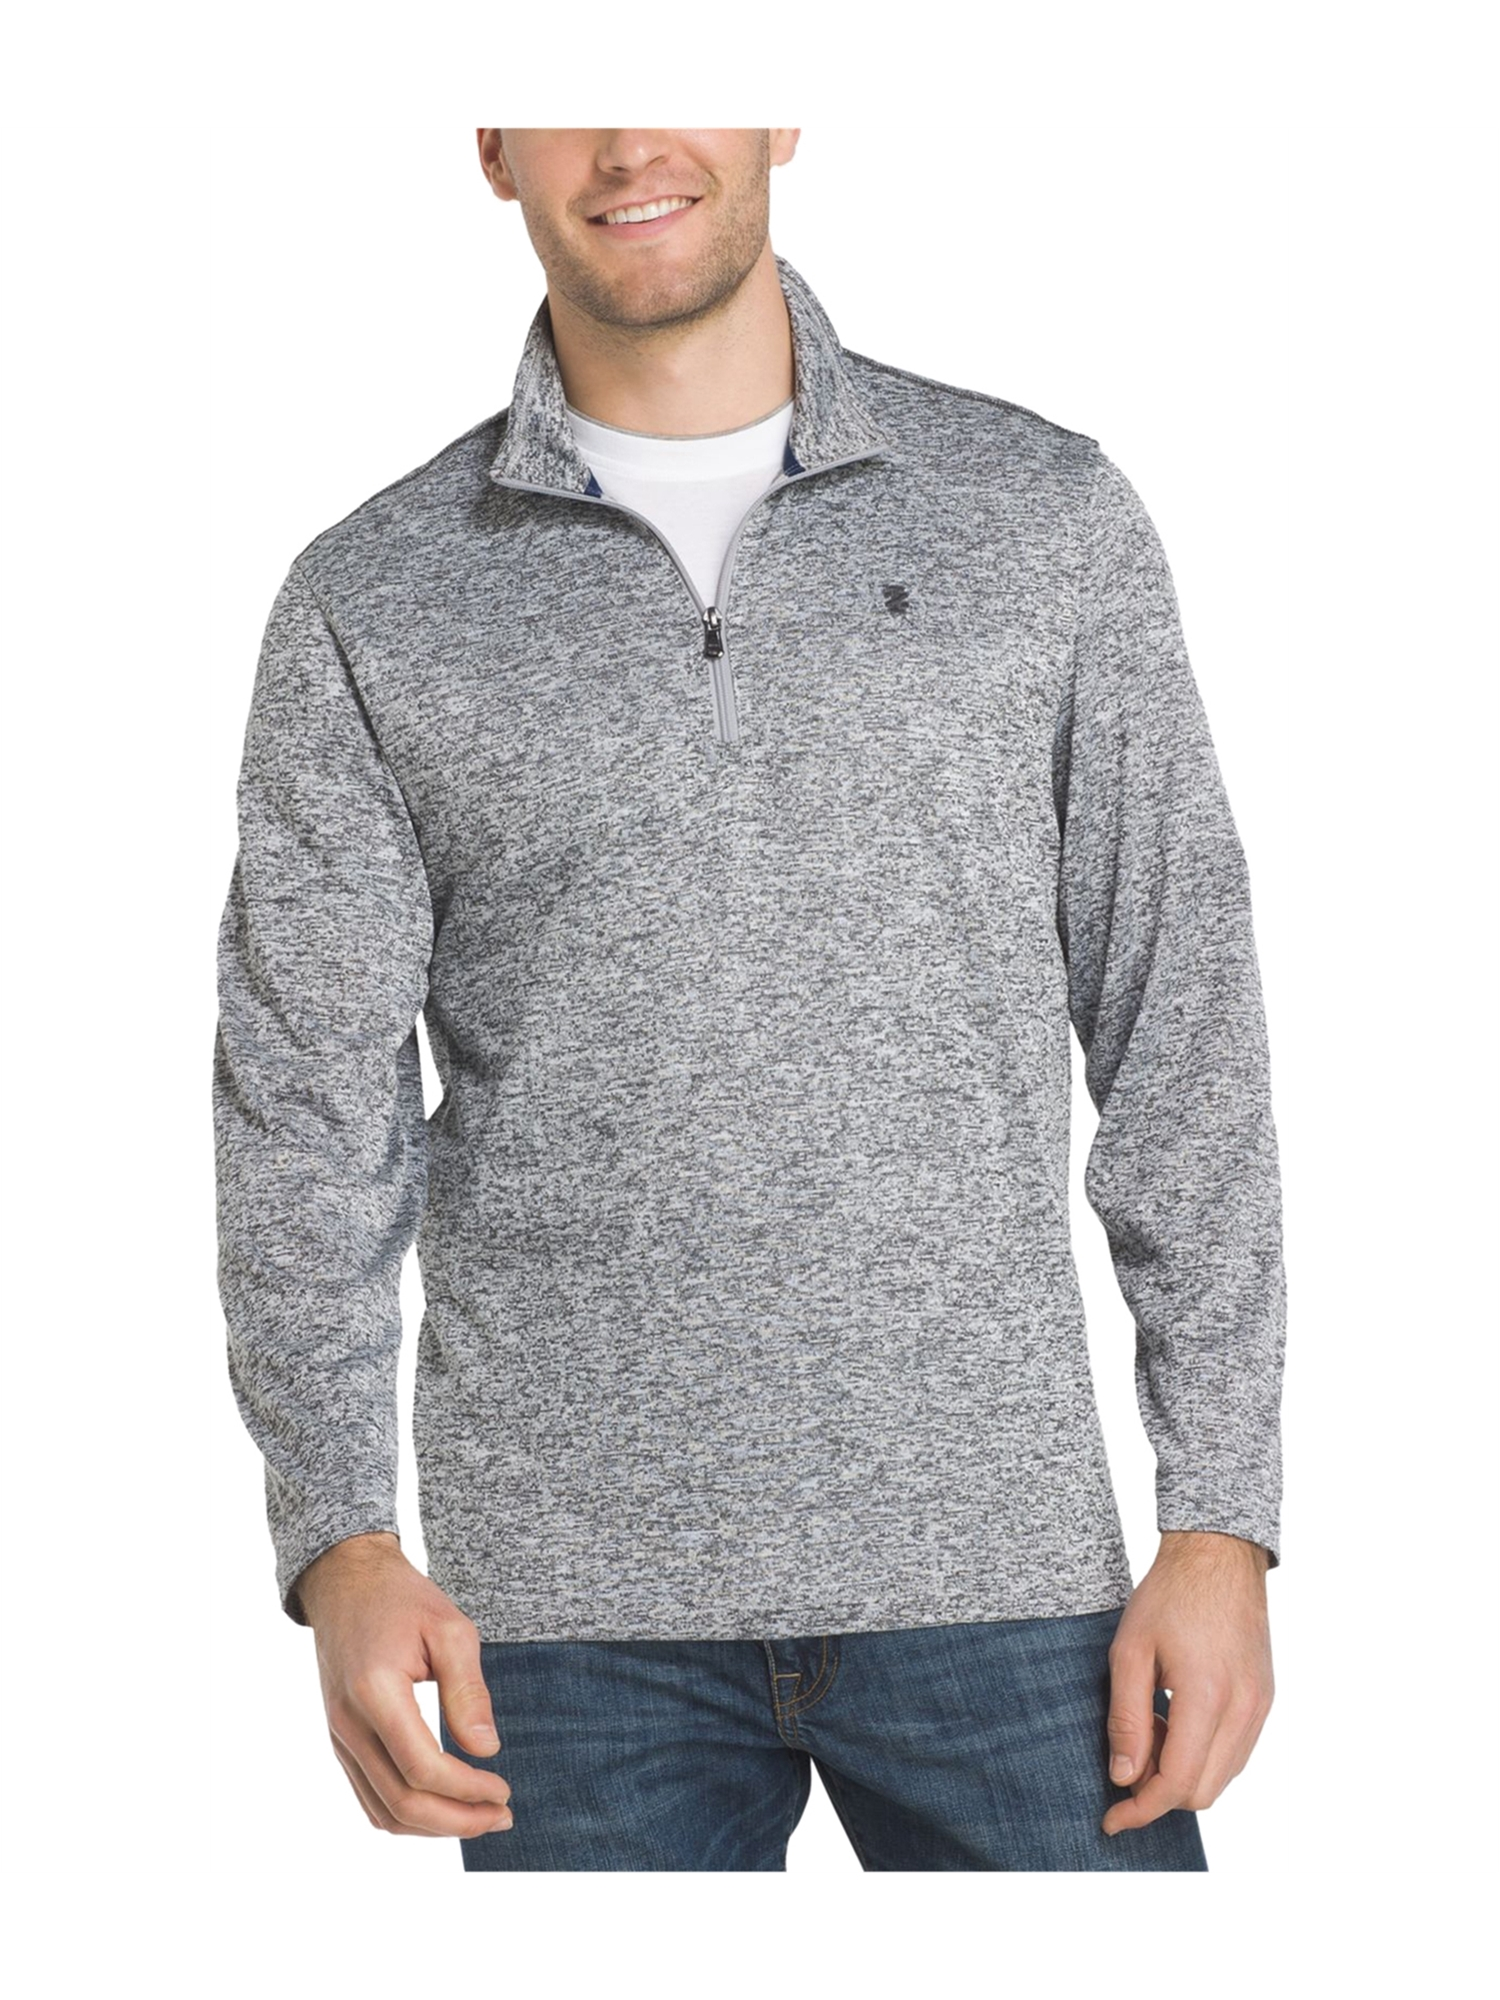 IZOD Men/'s Advantage Performance Natural Stretch 1//4 Zip Pullover Fleece Sweater